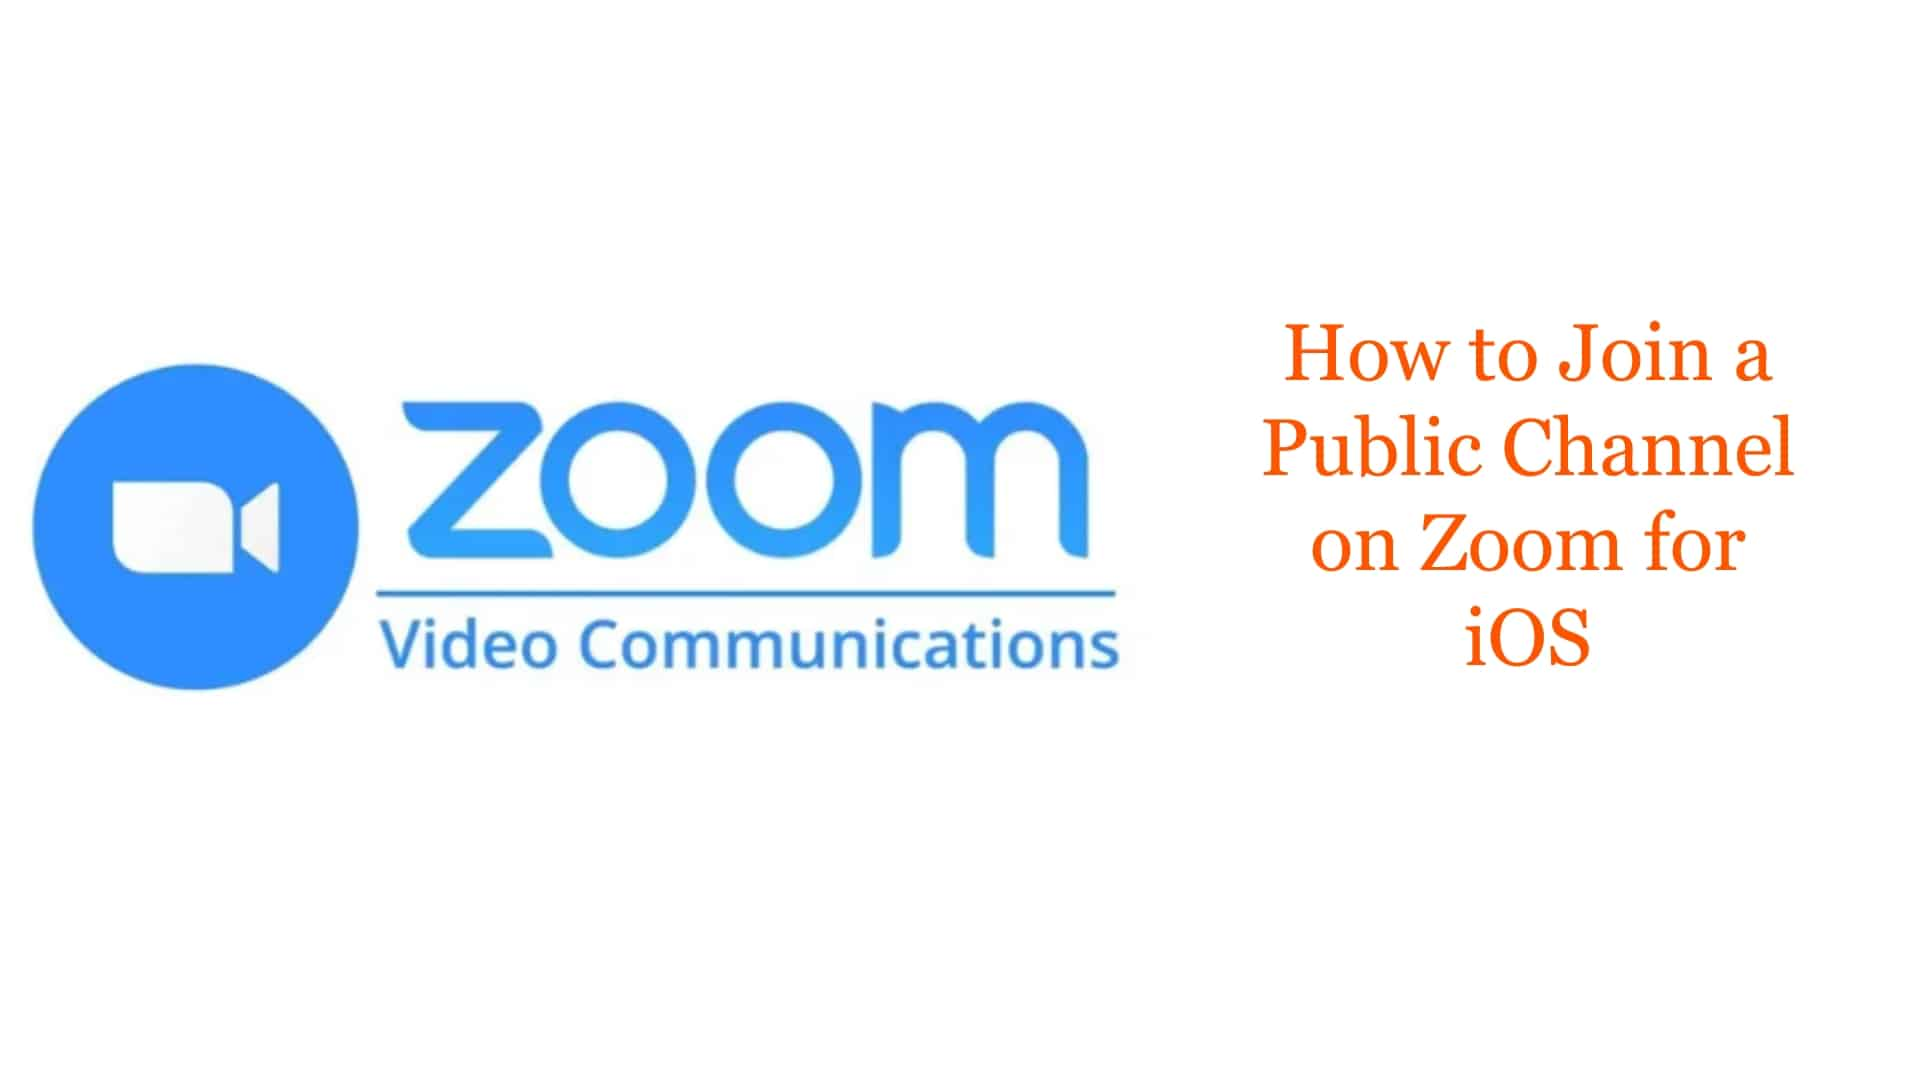 How to Join a Public Channel on Zoom for iOS